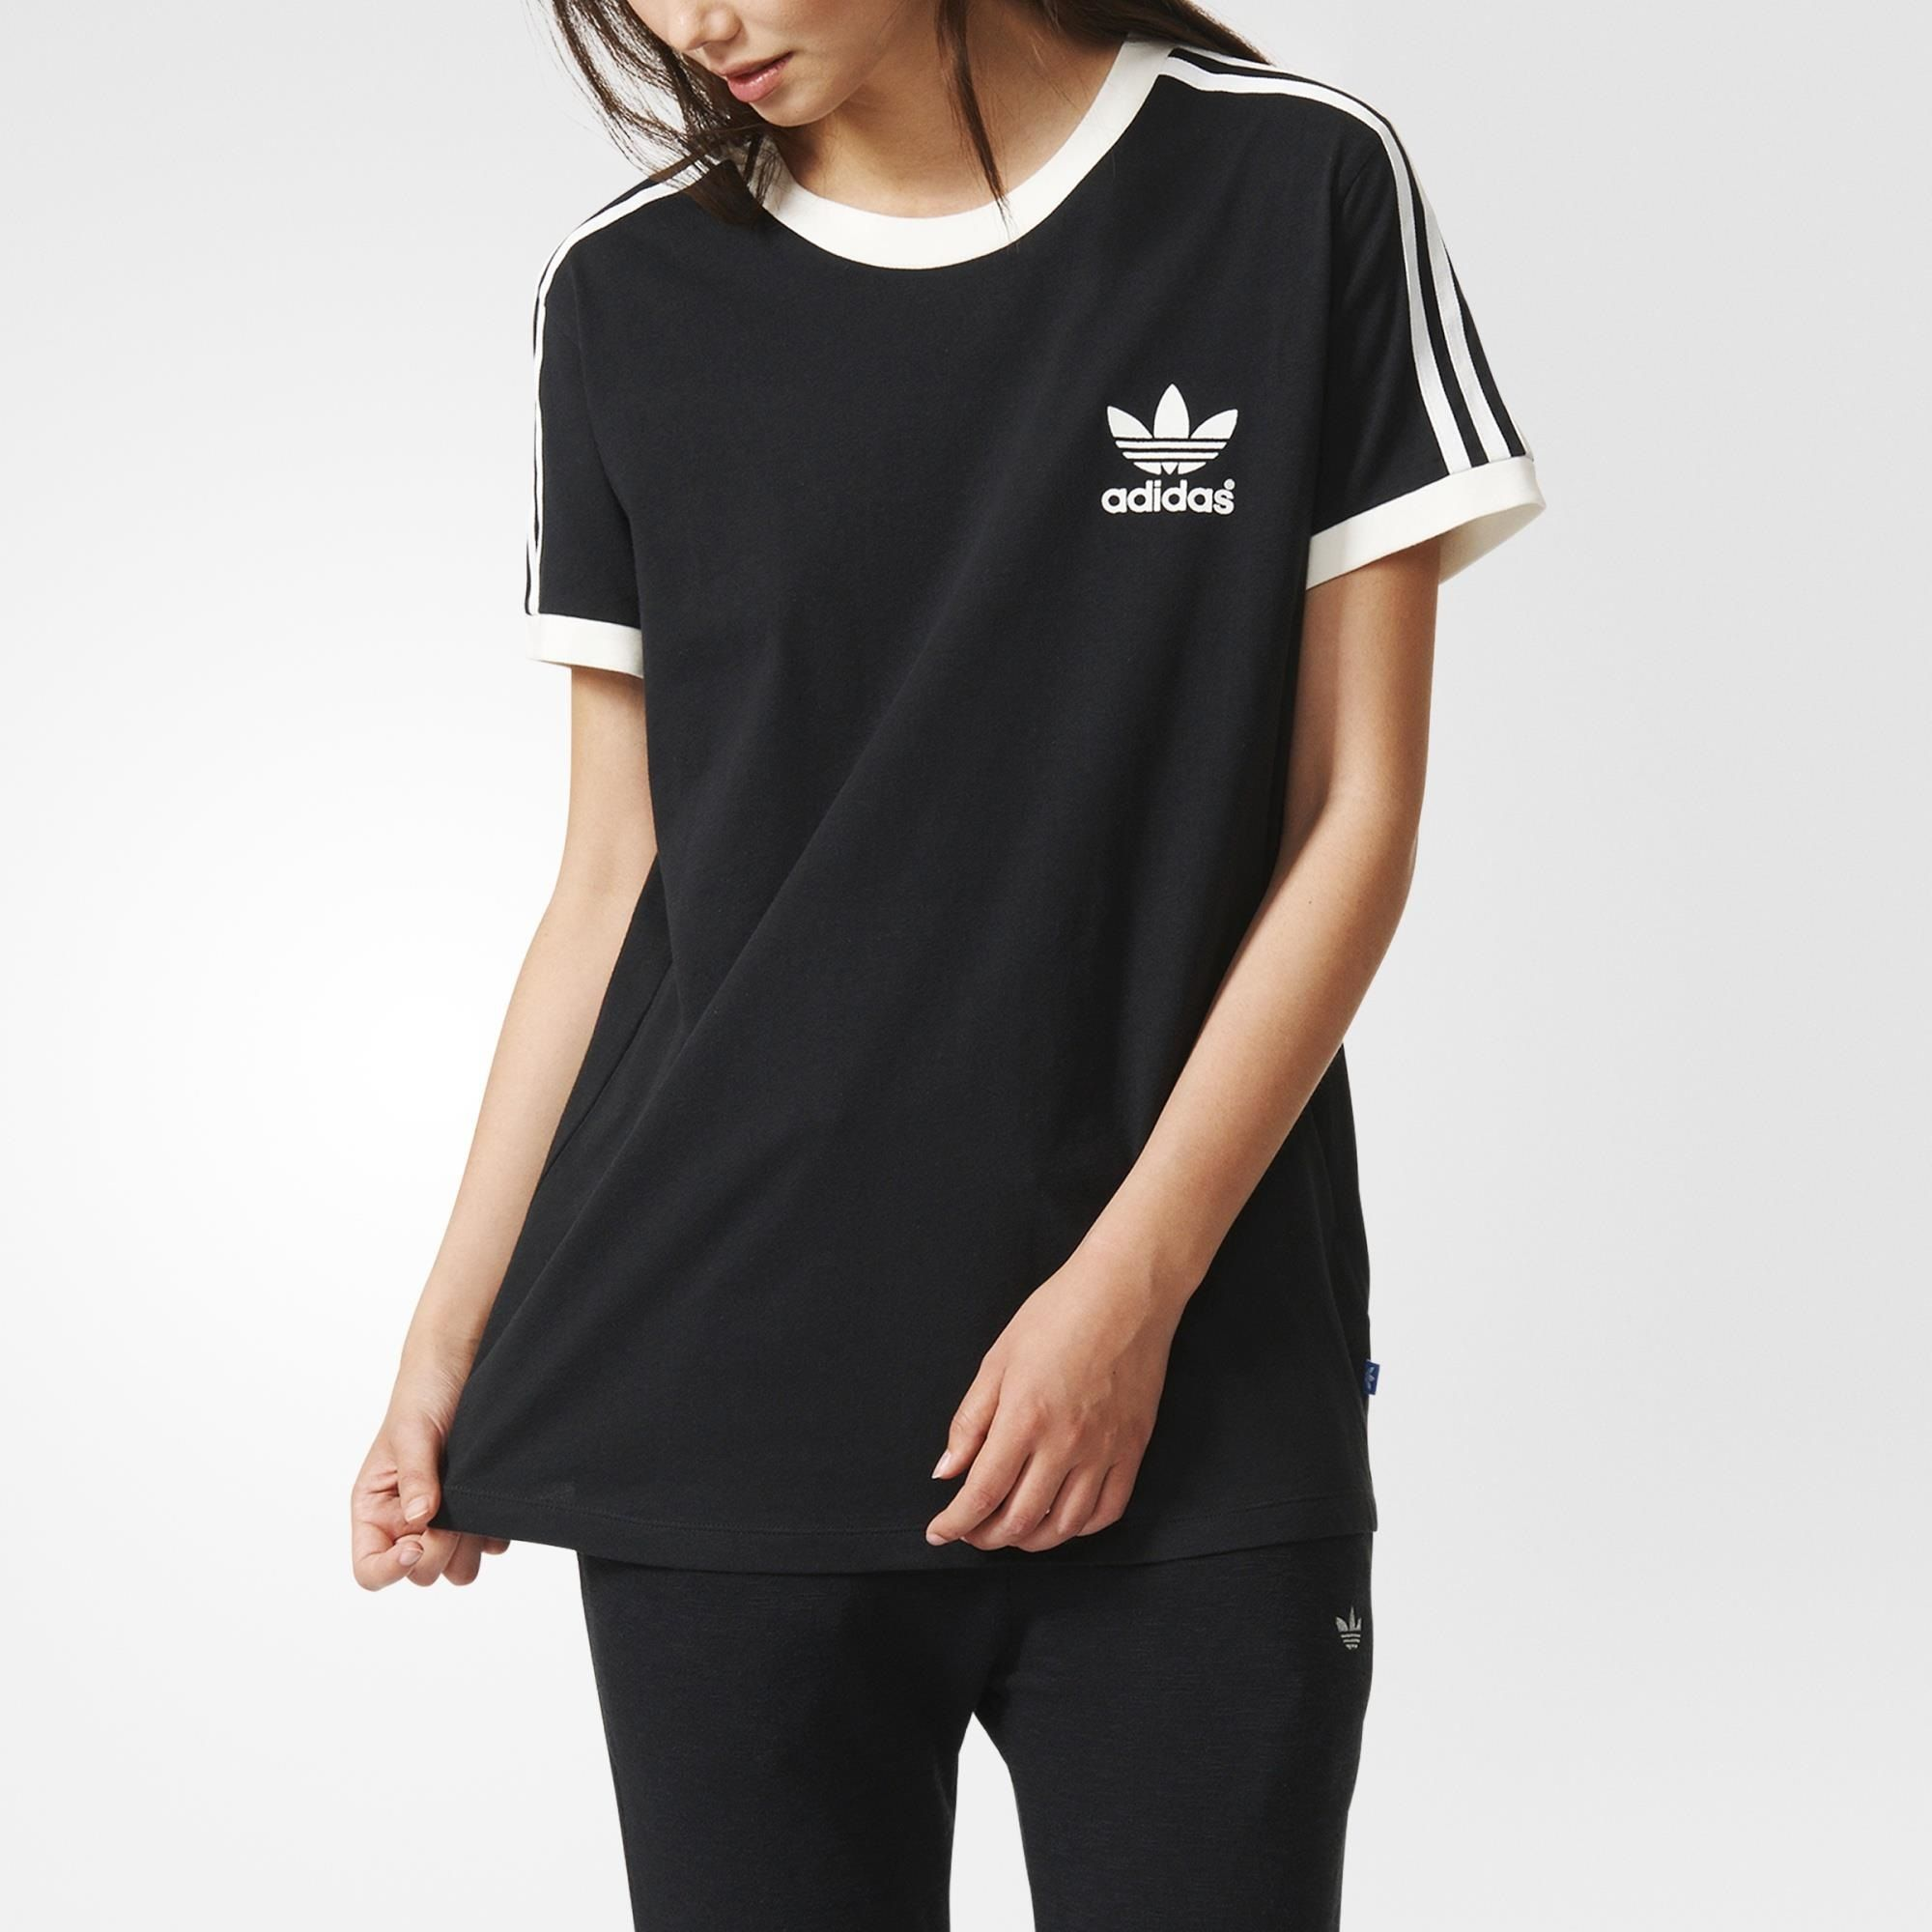 Adidas t shirt black white - Adidas Original 3 Stripes Tee This Relaxed Fit Women S T Shirt Features From The Contrast Crewneck Down To The Banded Sleeves